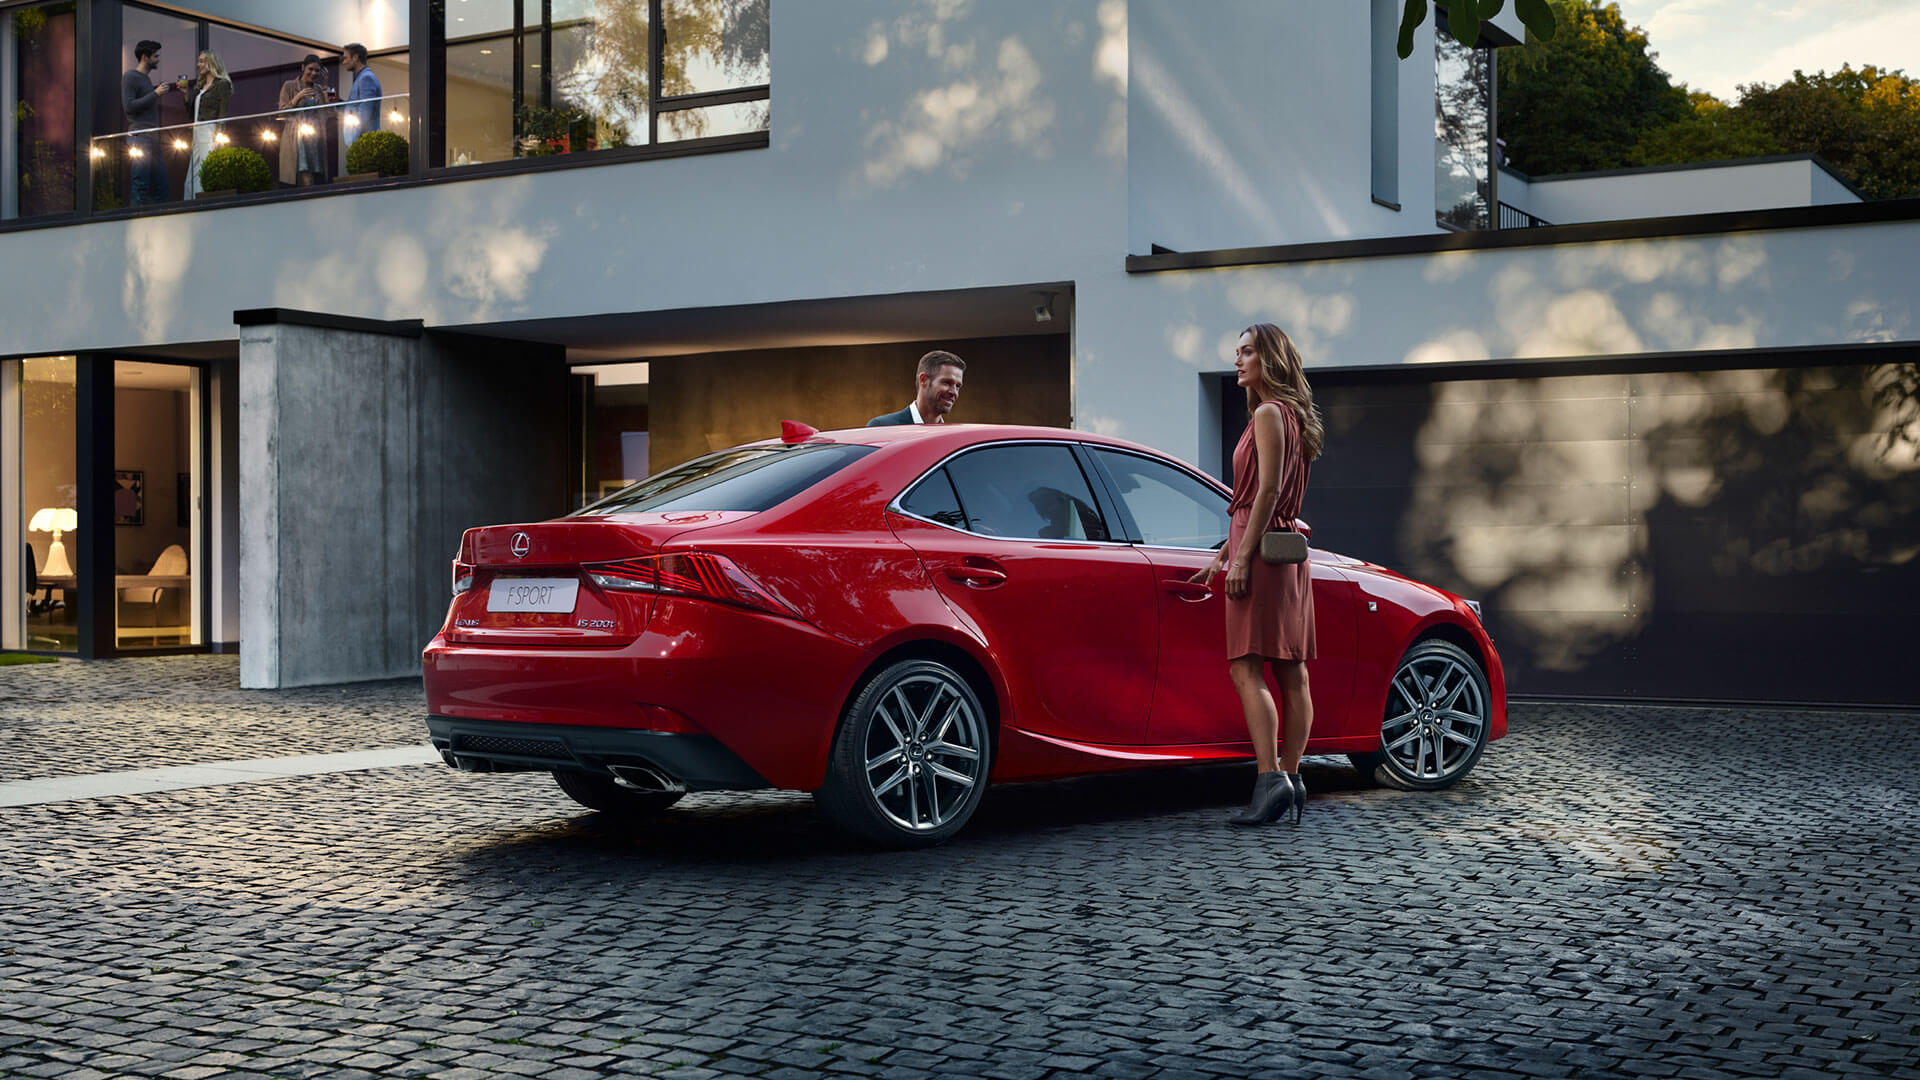 2017 lexus is gallery 023 lifestyle